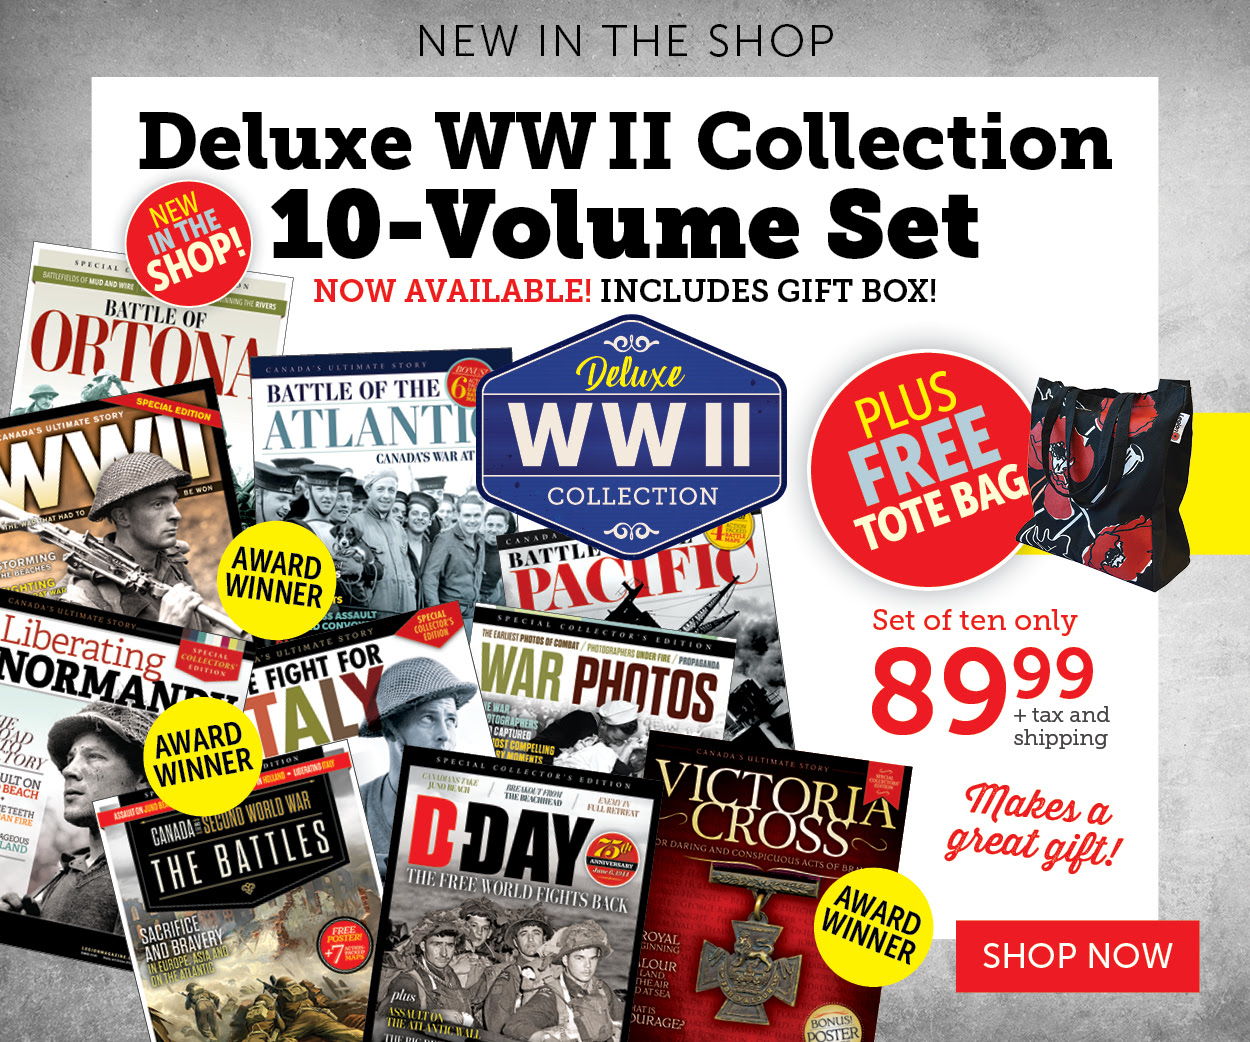 Deluxe WWII Collection